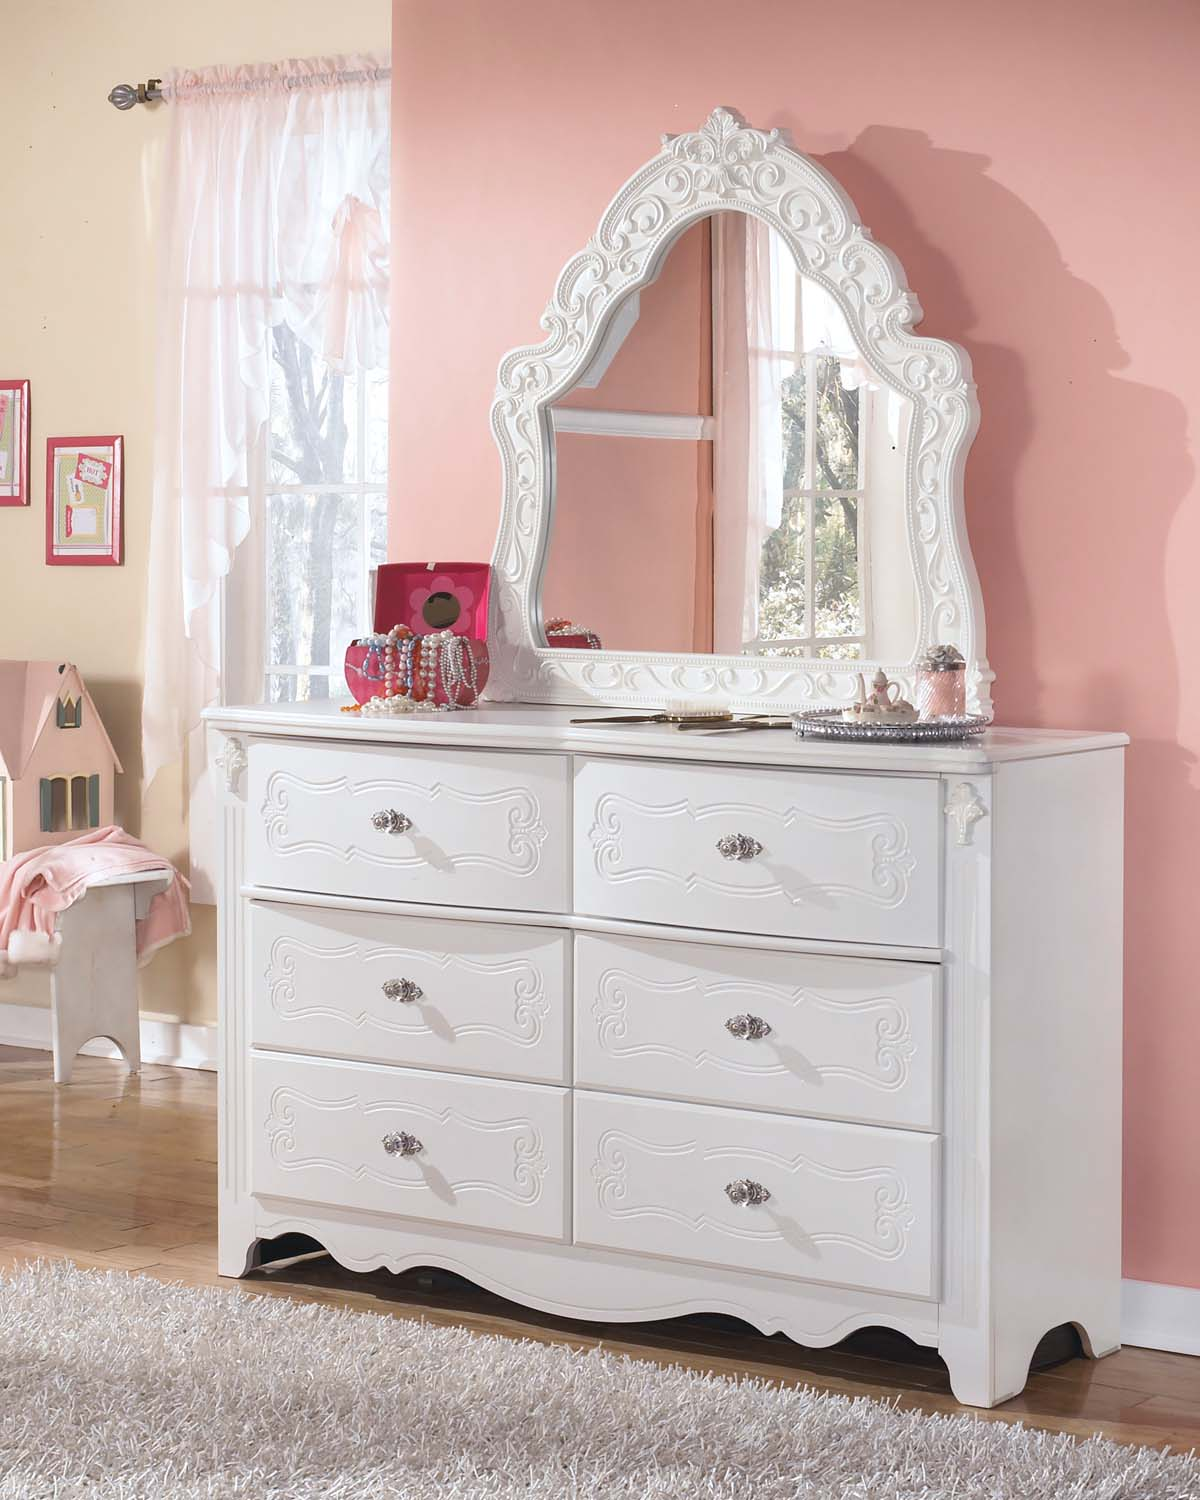 White furniture - an exquisite piece of furniture 66